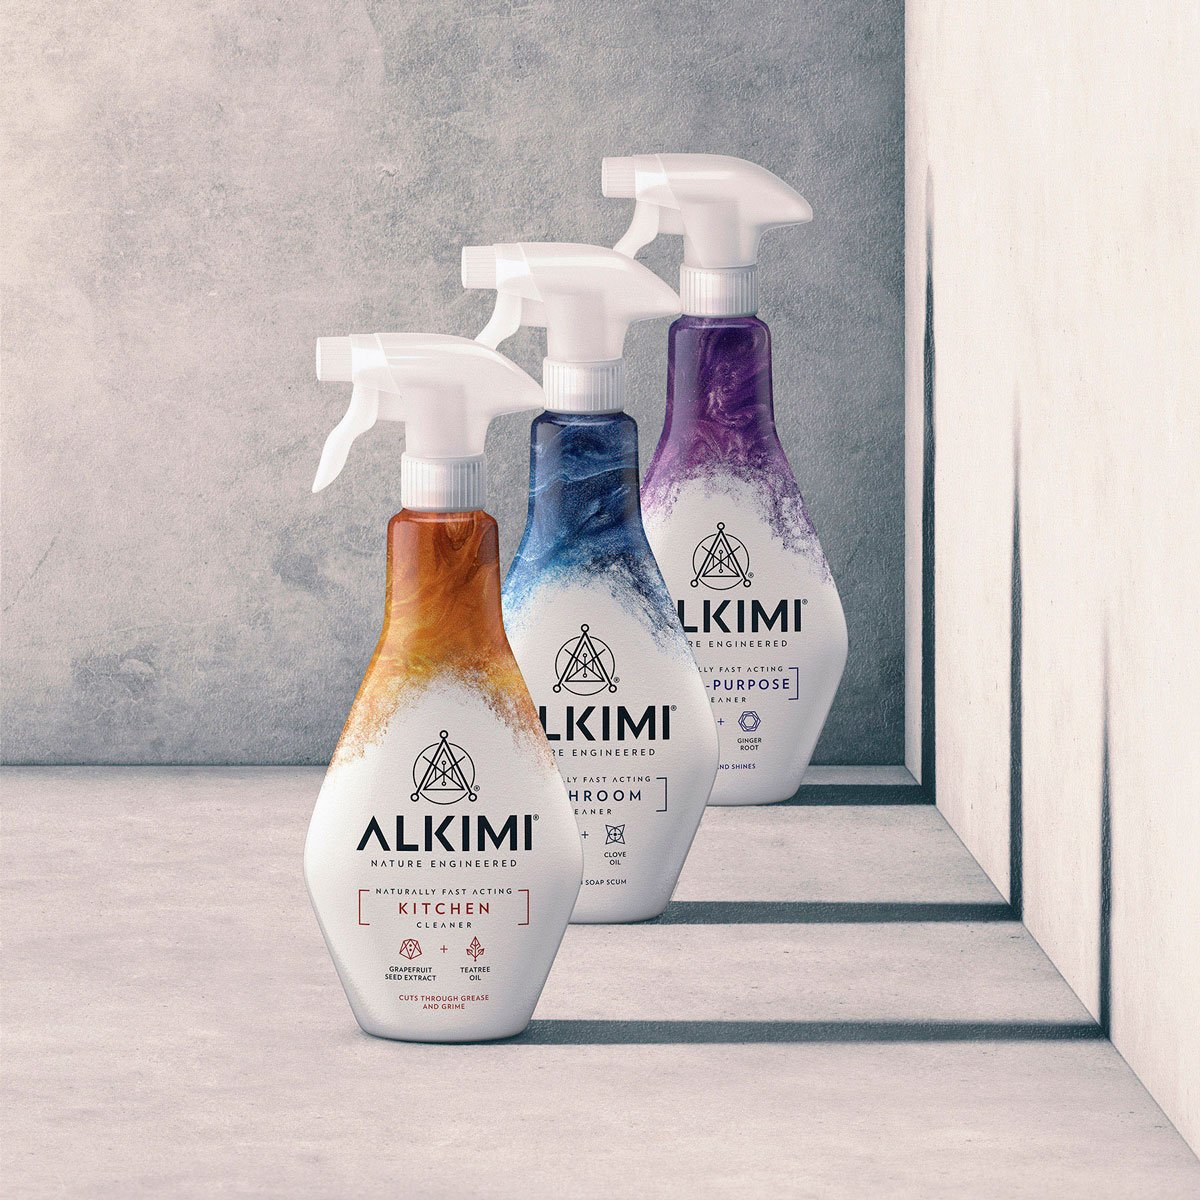 Our latest work to go live, the launch of a new non-toxic cleaning range for @ChallsOnline #branding #innovation #packagingdesign #alkimi